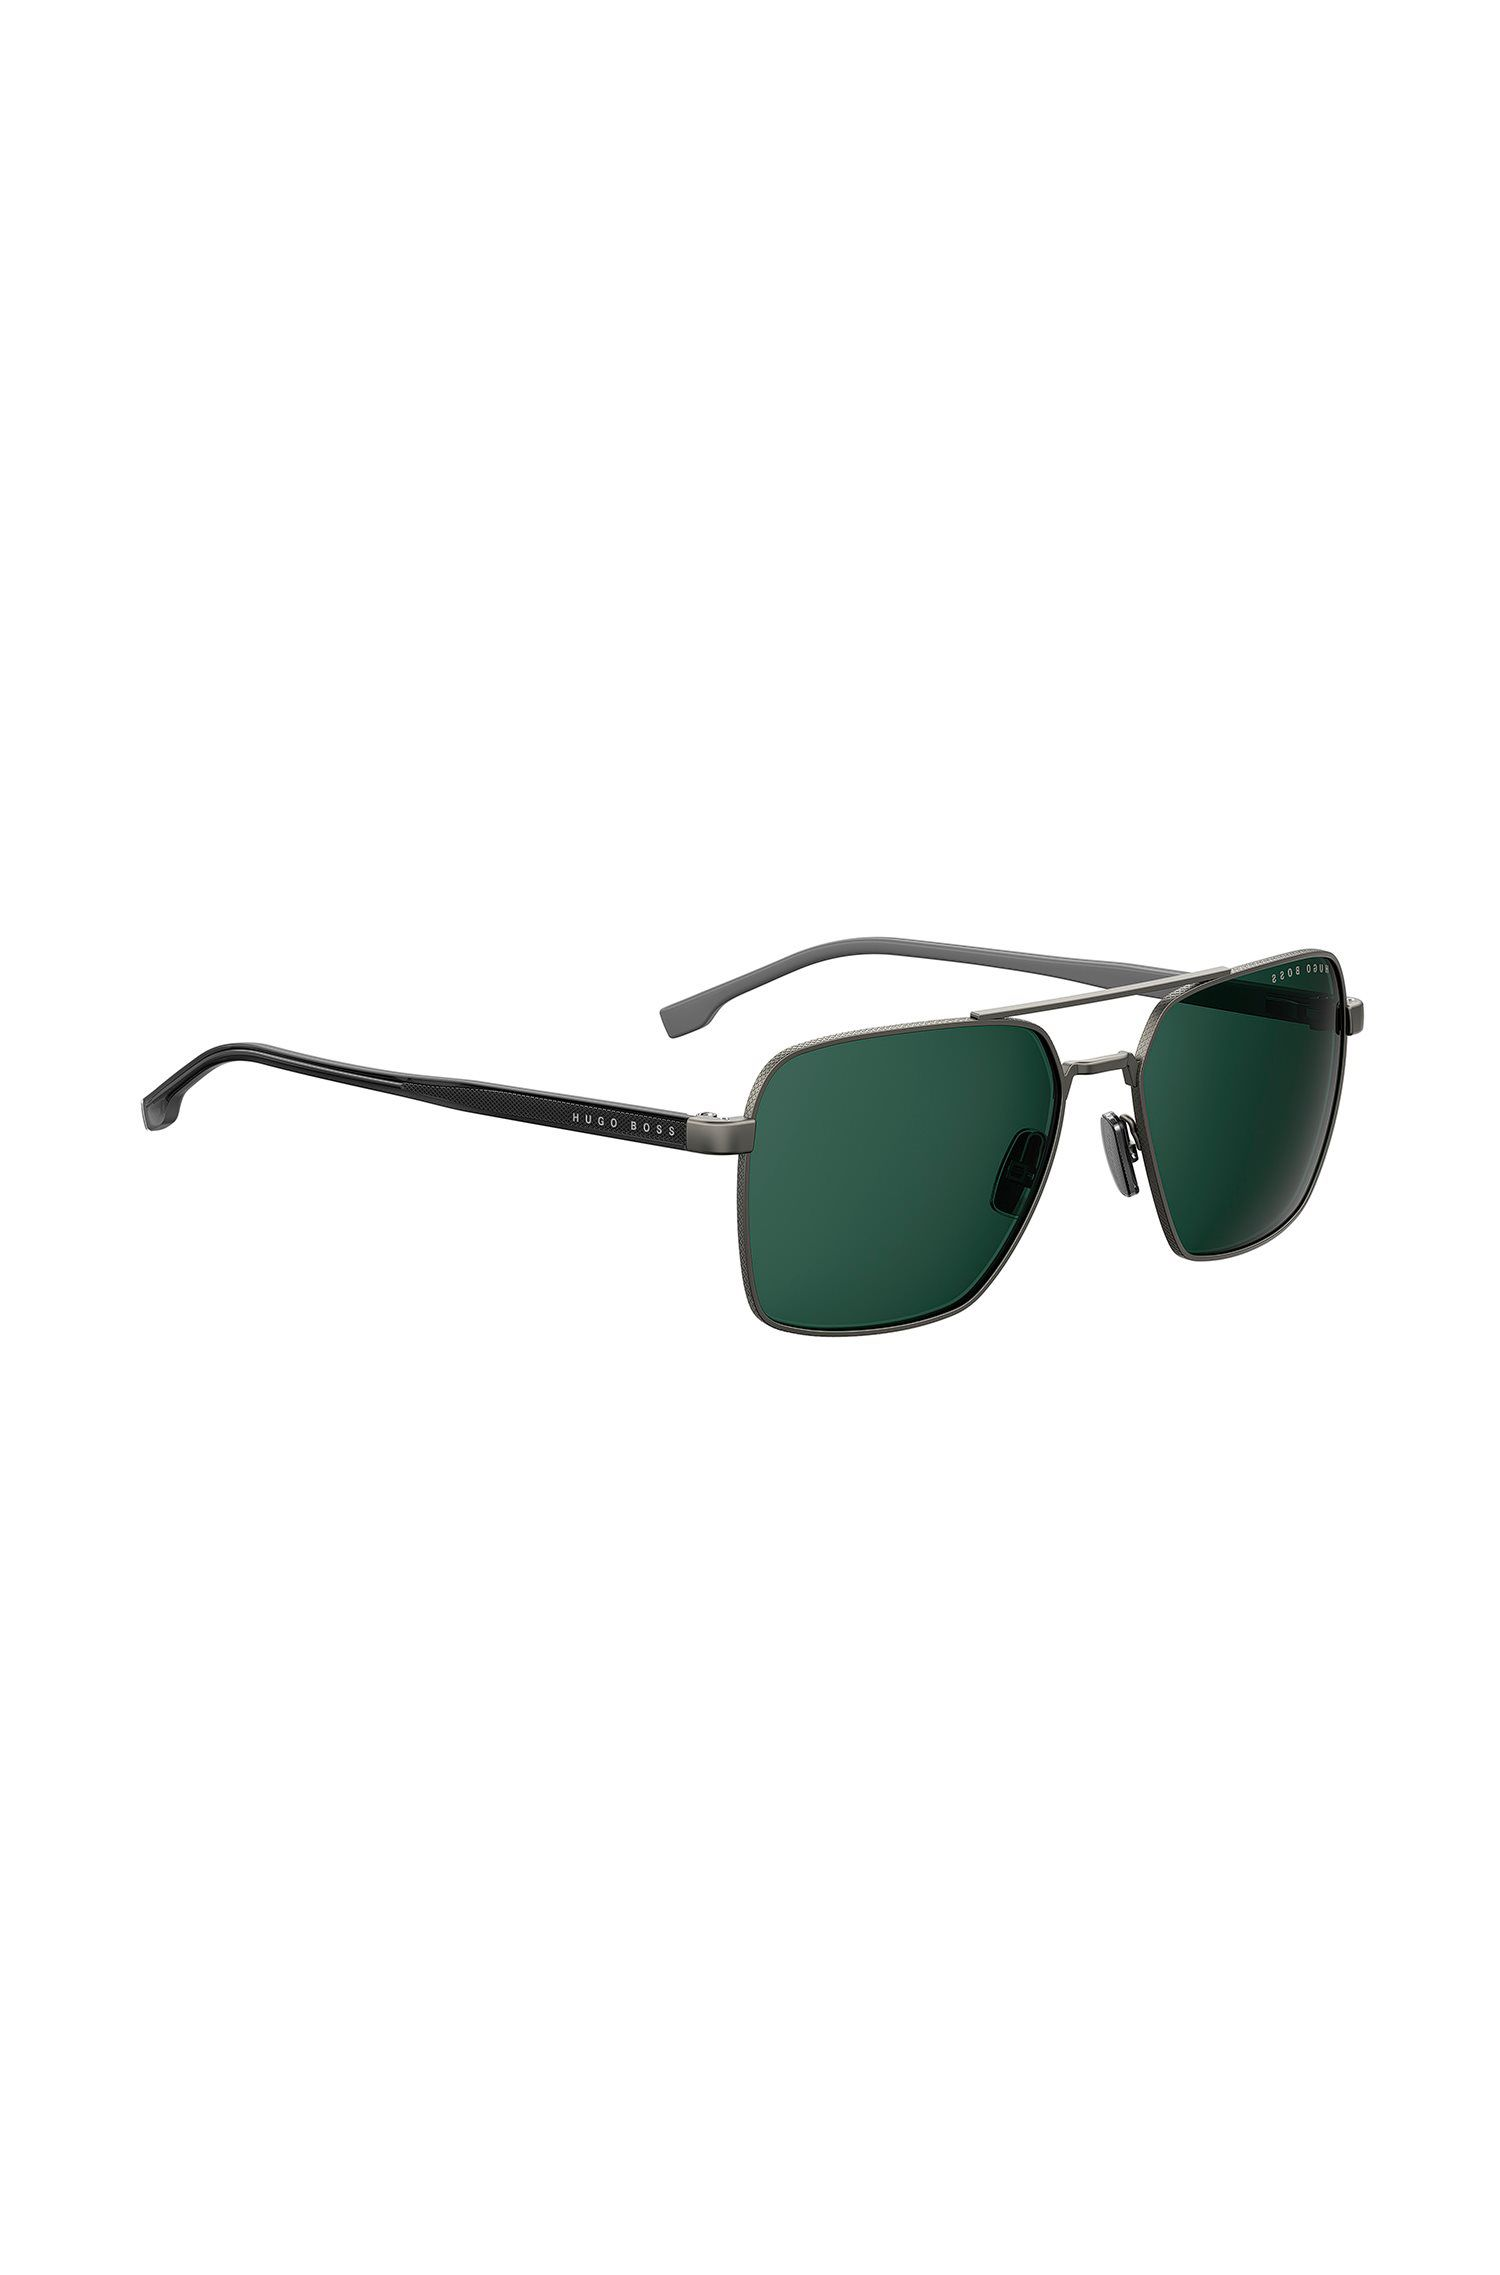 Navigator sunglasses with green lenses and Optyl temples, Assorted-Pre-Pack